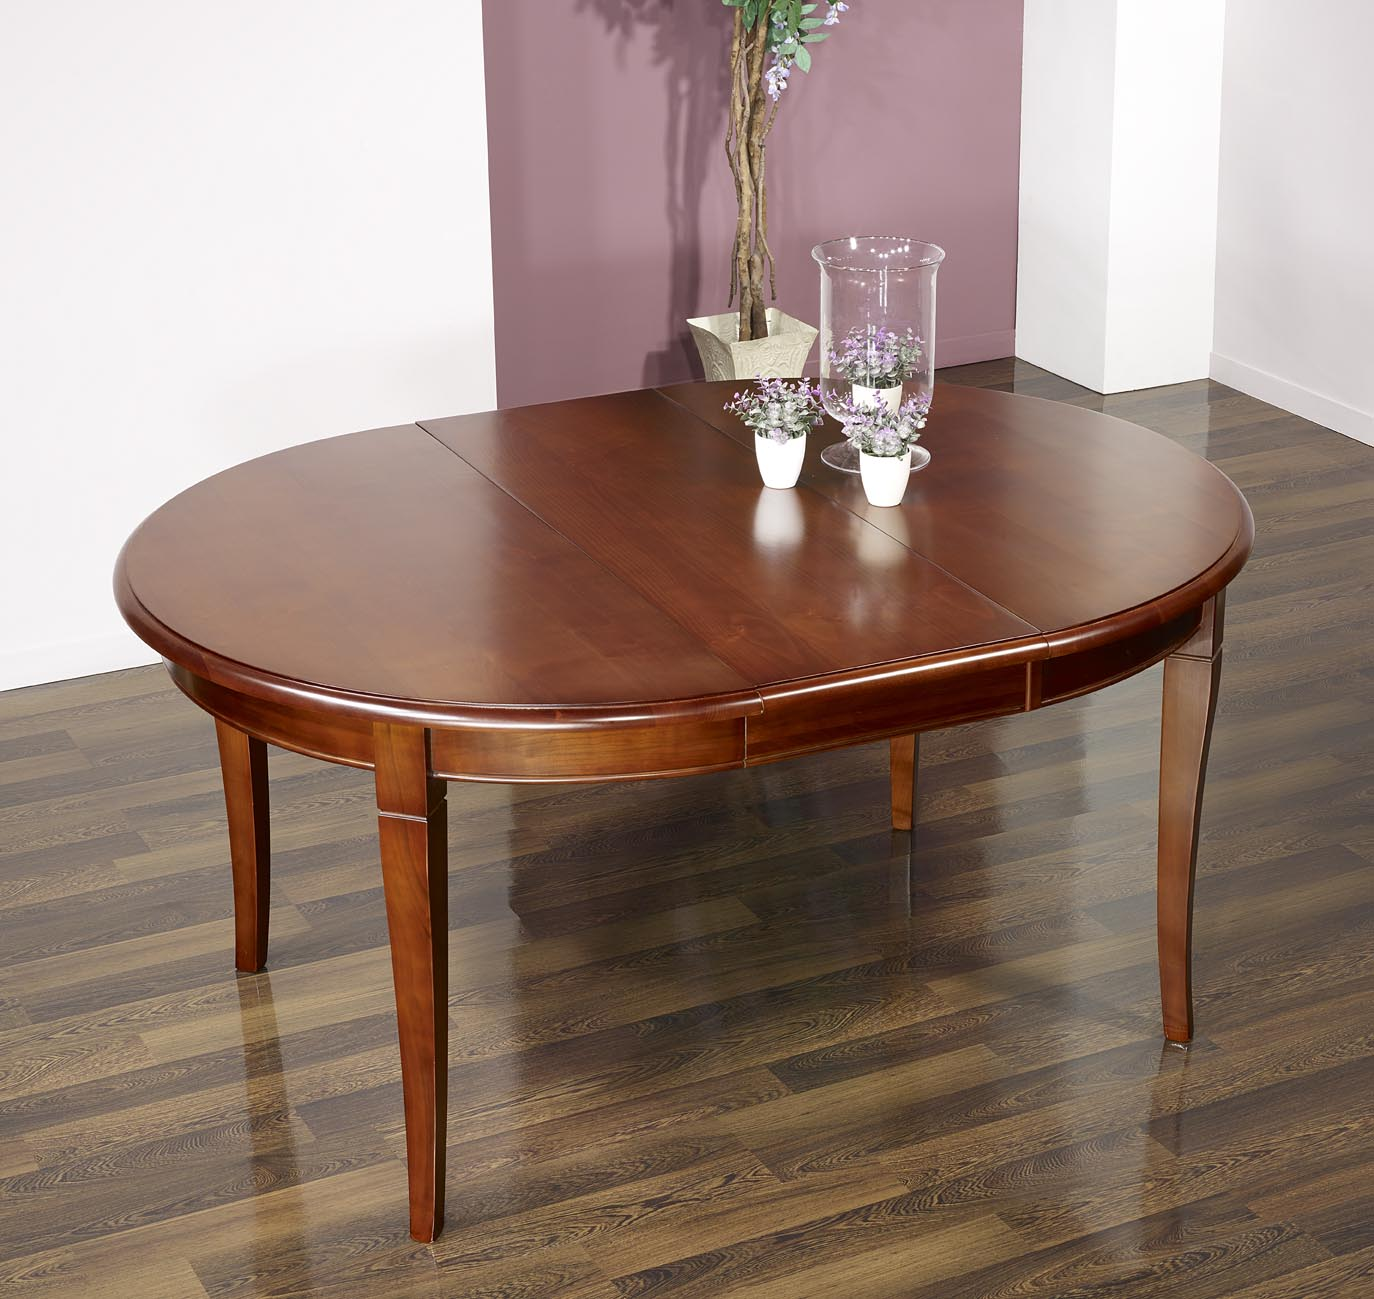 Table ronde 4 pieds sabres en merisier massif de style for Table a rallonge 12 personnes